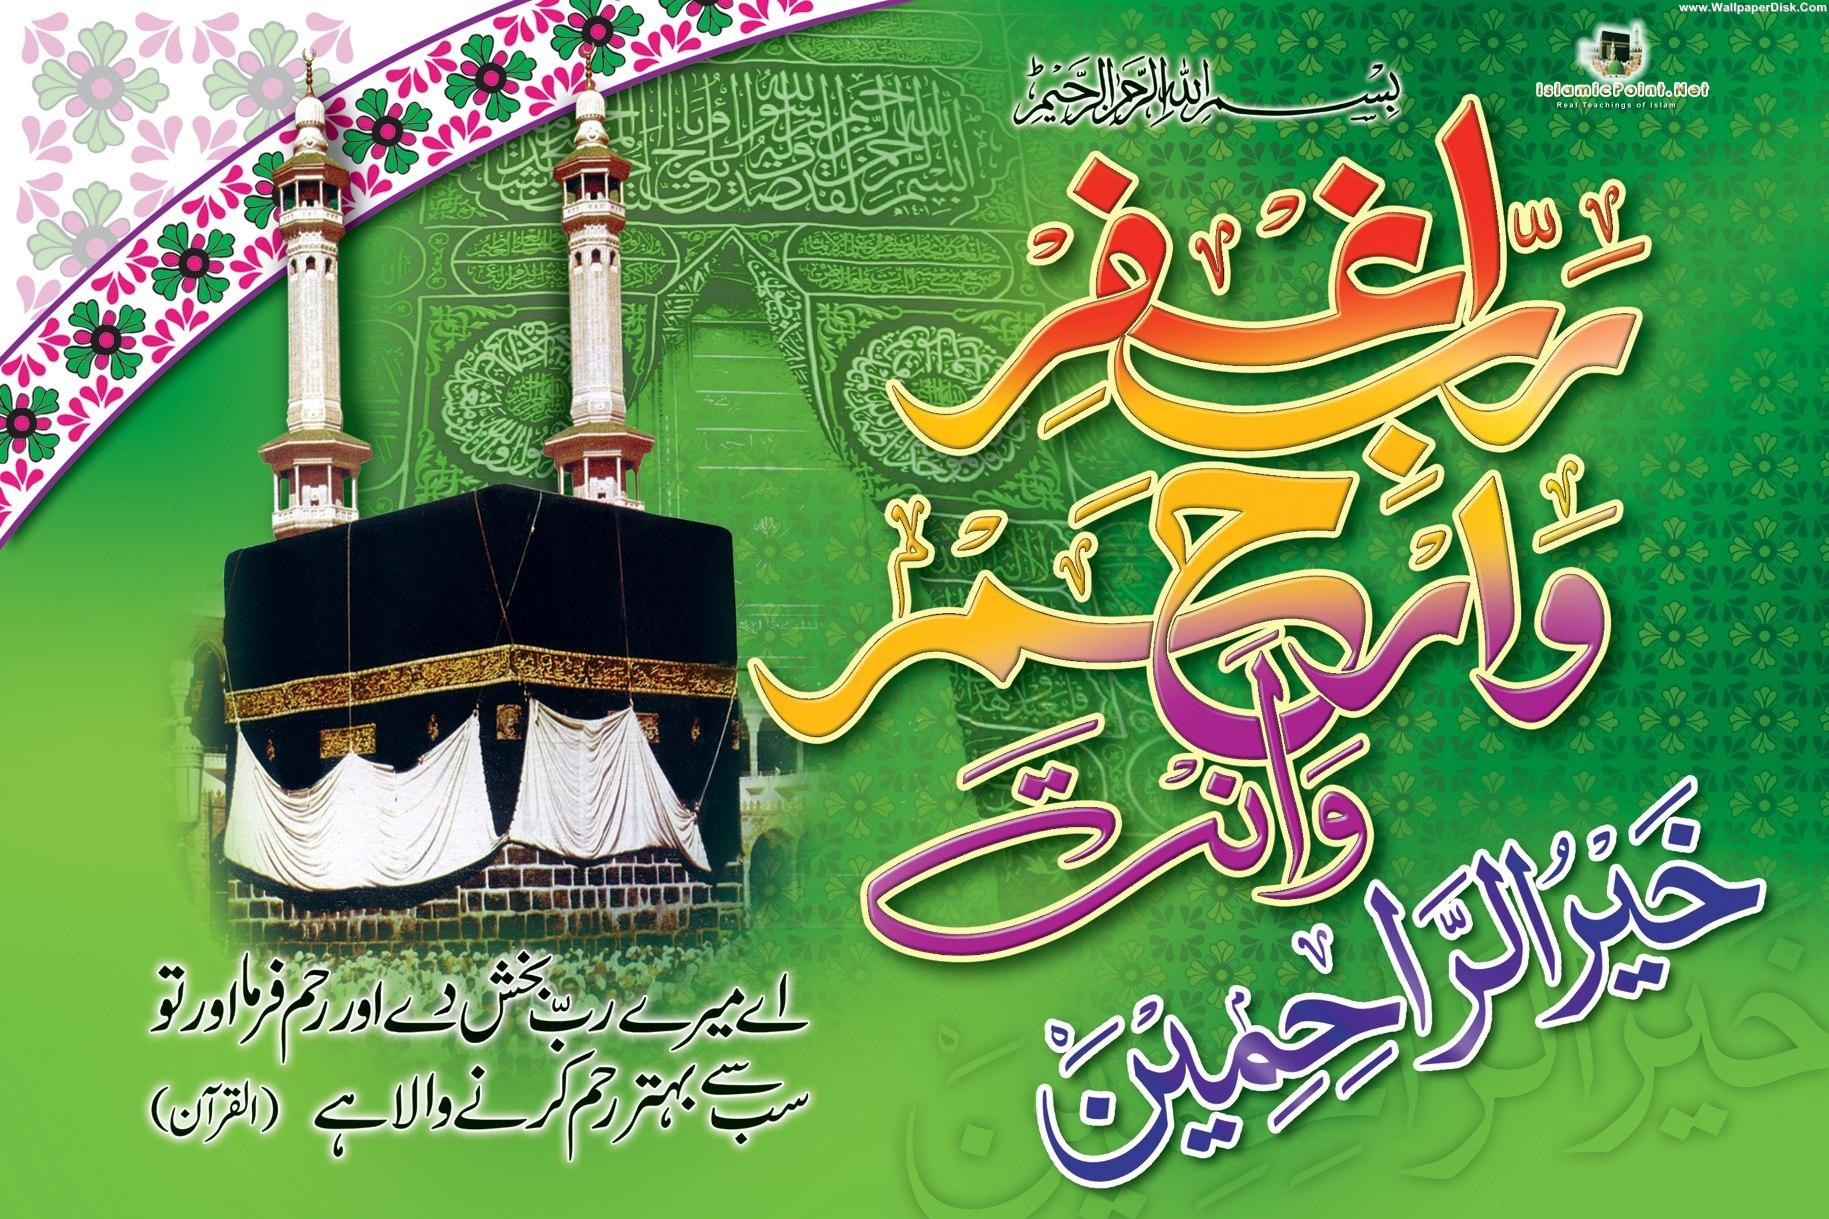 12-rabi-ul-awal-2016-hd-wallpapers